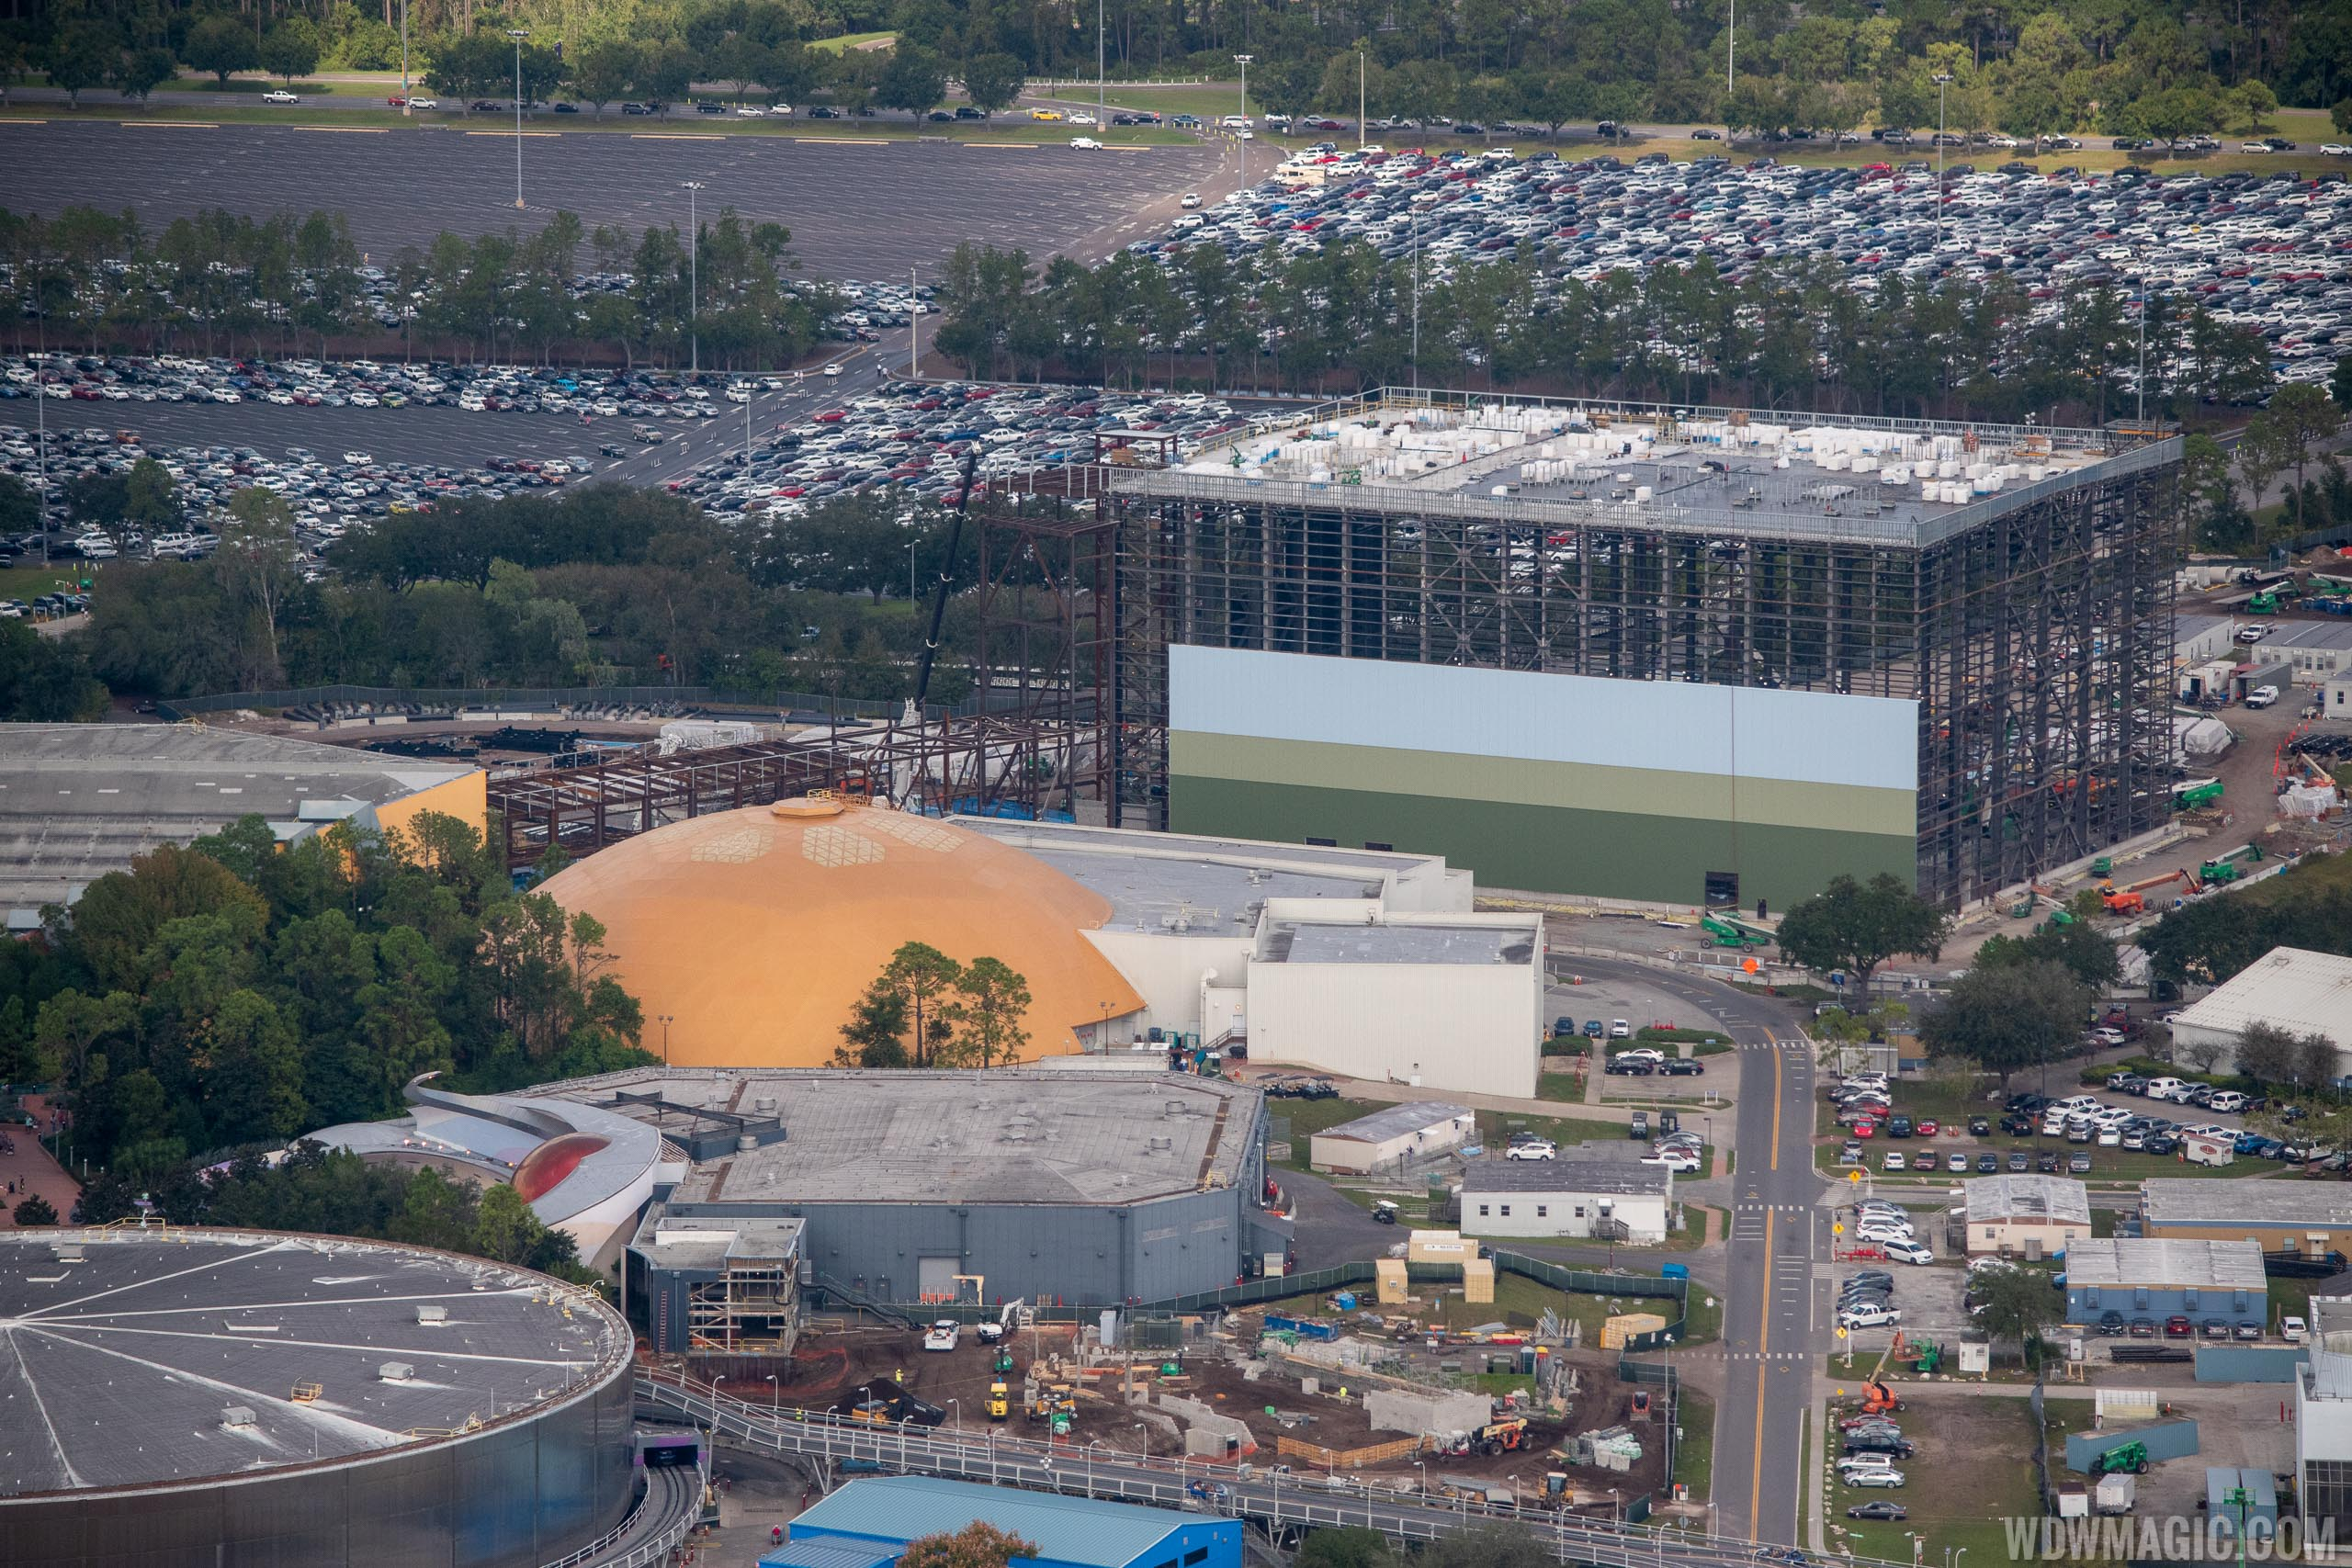 Guardians of the Galaxy construction - November 2018